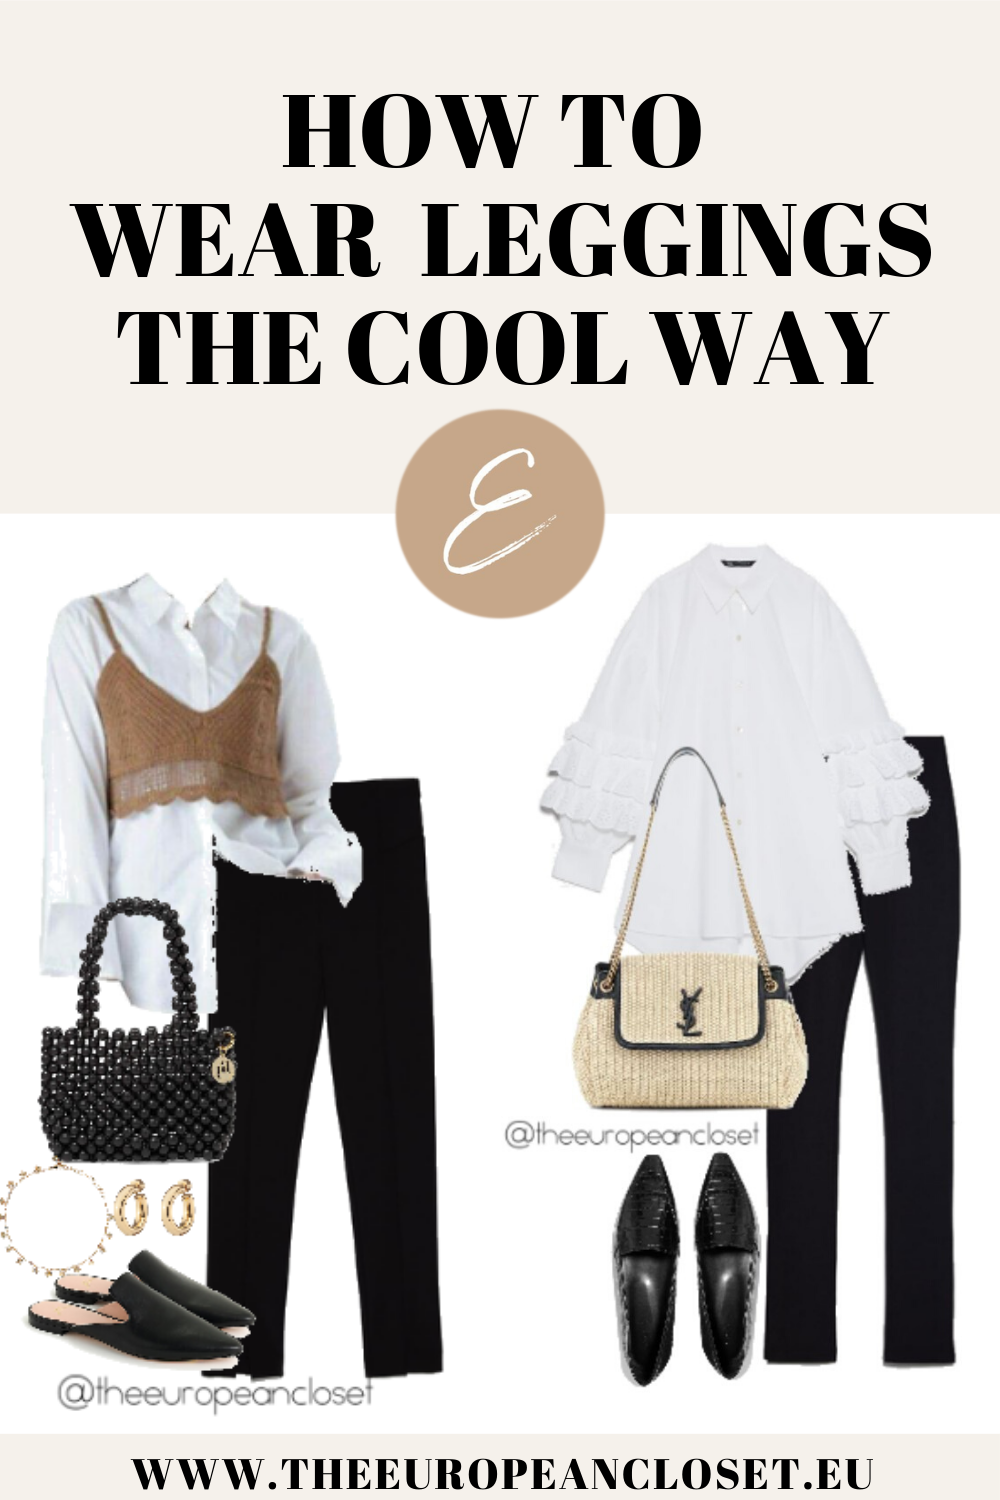 How To Wear Leggings The Cool Way